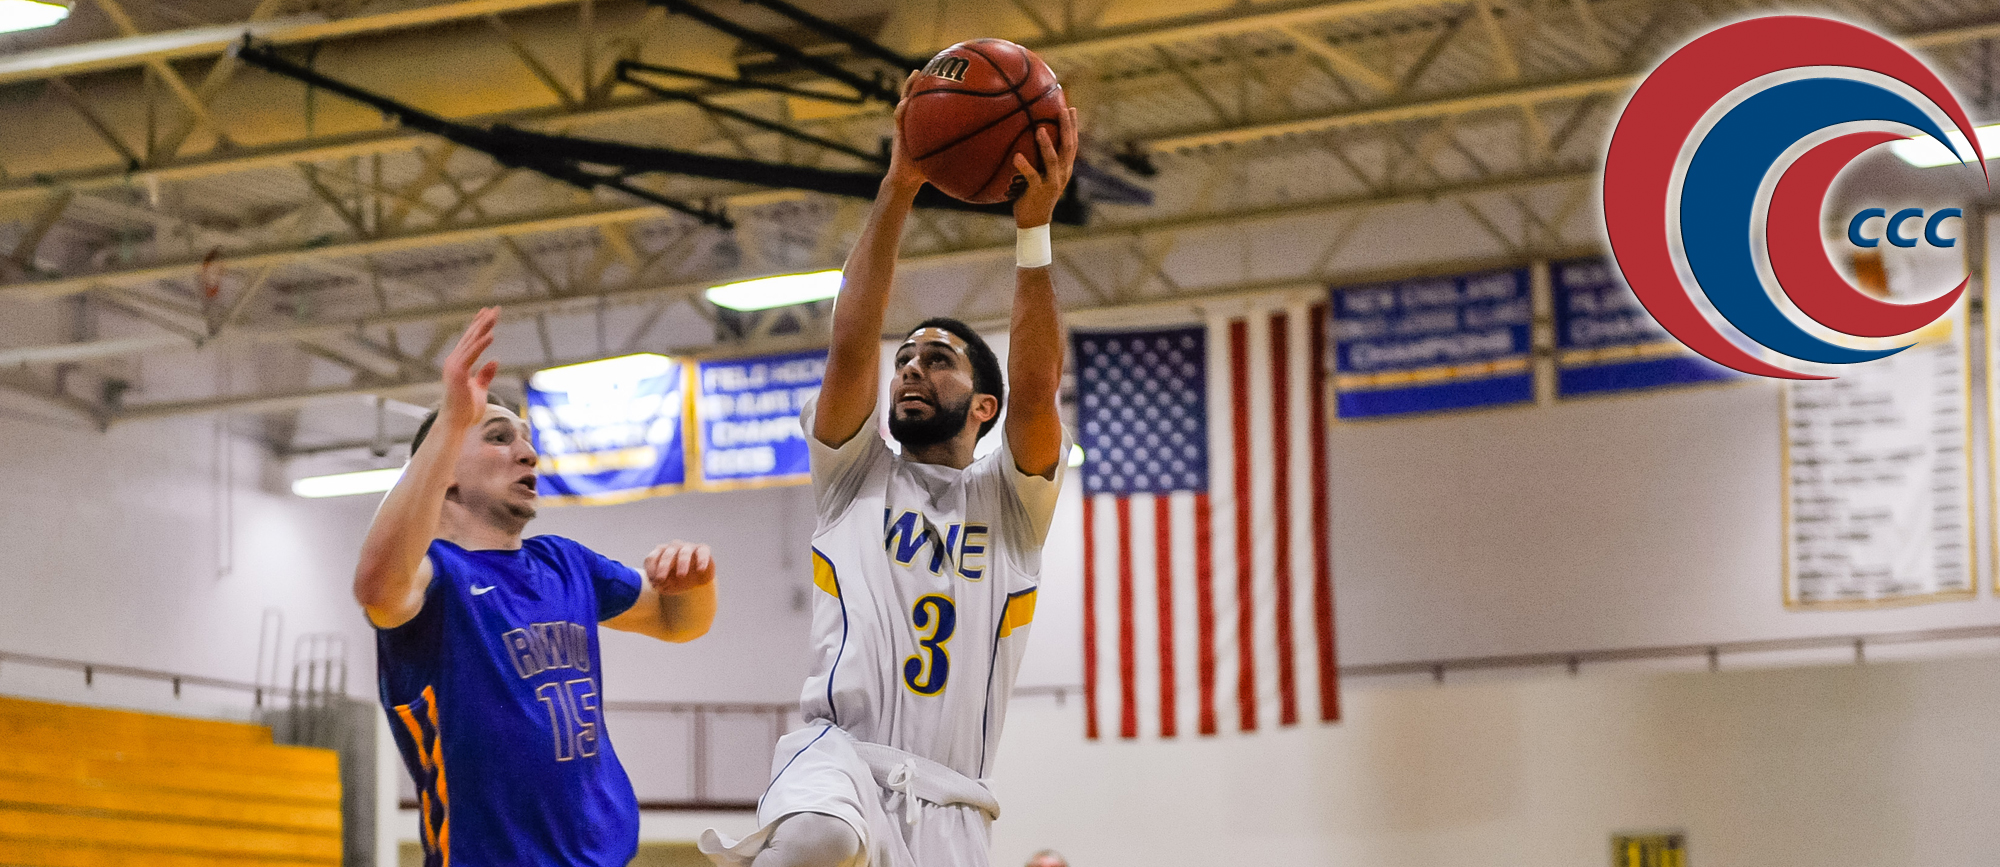 Western New England Picked Sixth in CCC Preseason Coaches' Poll